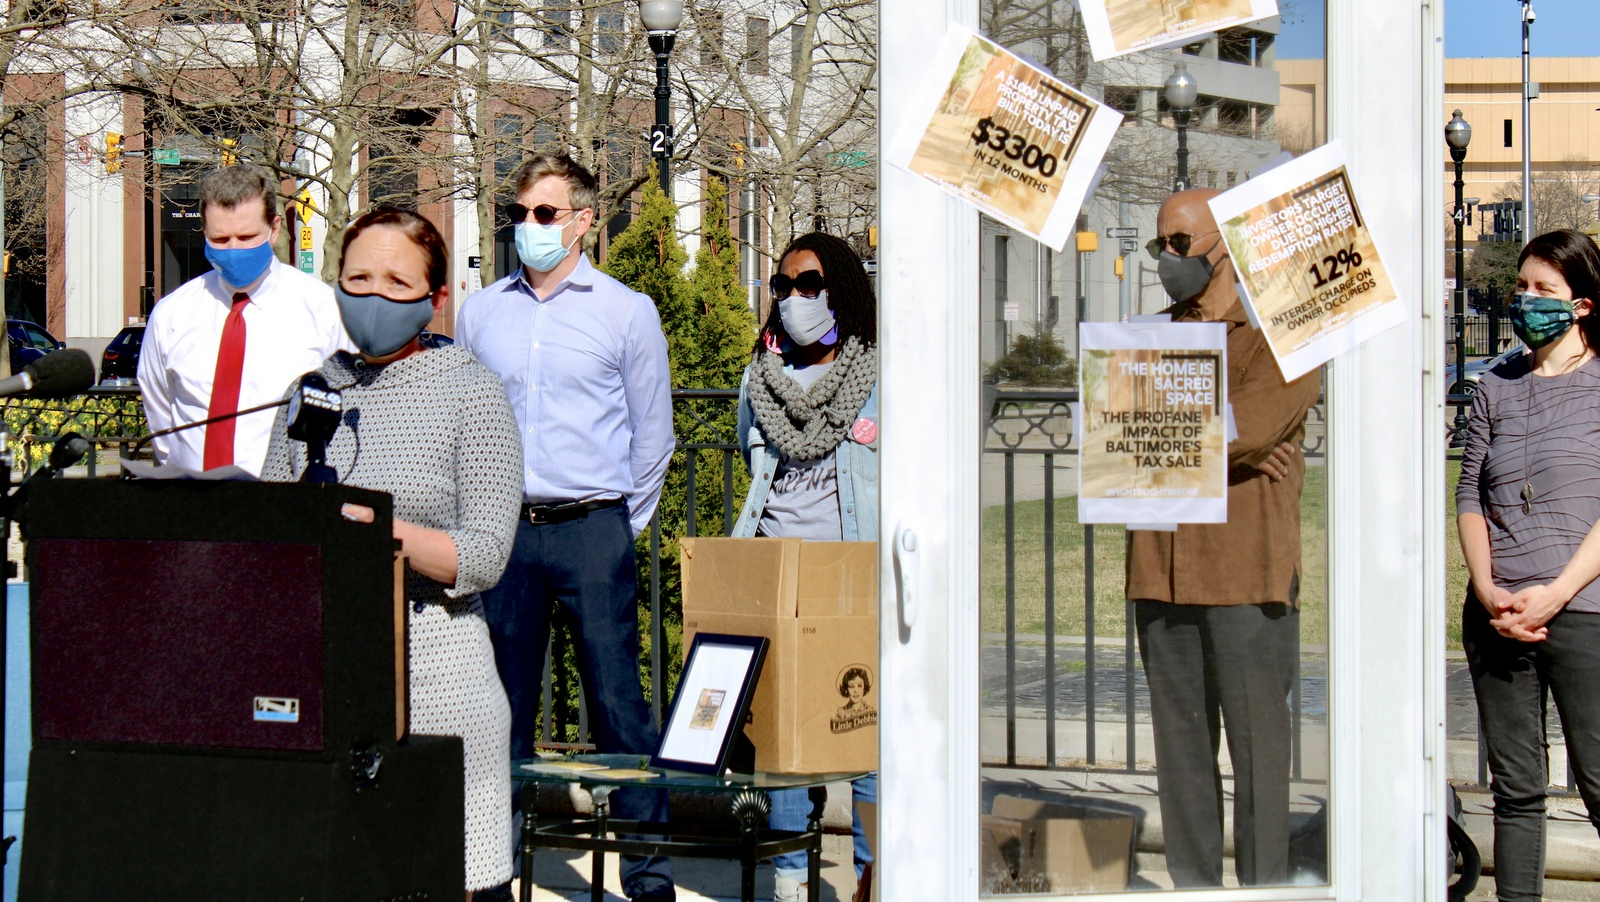 Calling for the mayor to take action on tax sales: Allison Harris, of the Pro Bono Resource Center of Maryland, with representatives of Fight Blight Bmore, the Maryland Volunteer Lawyers Service and others. (@PBRCMD)